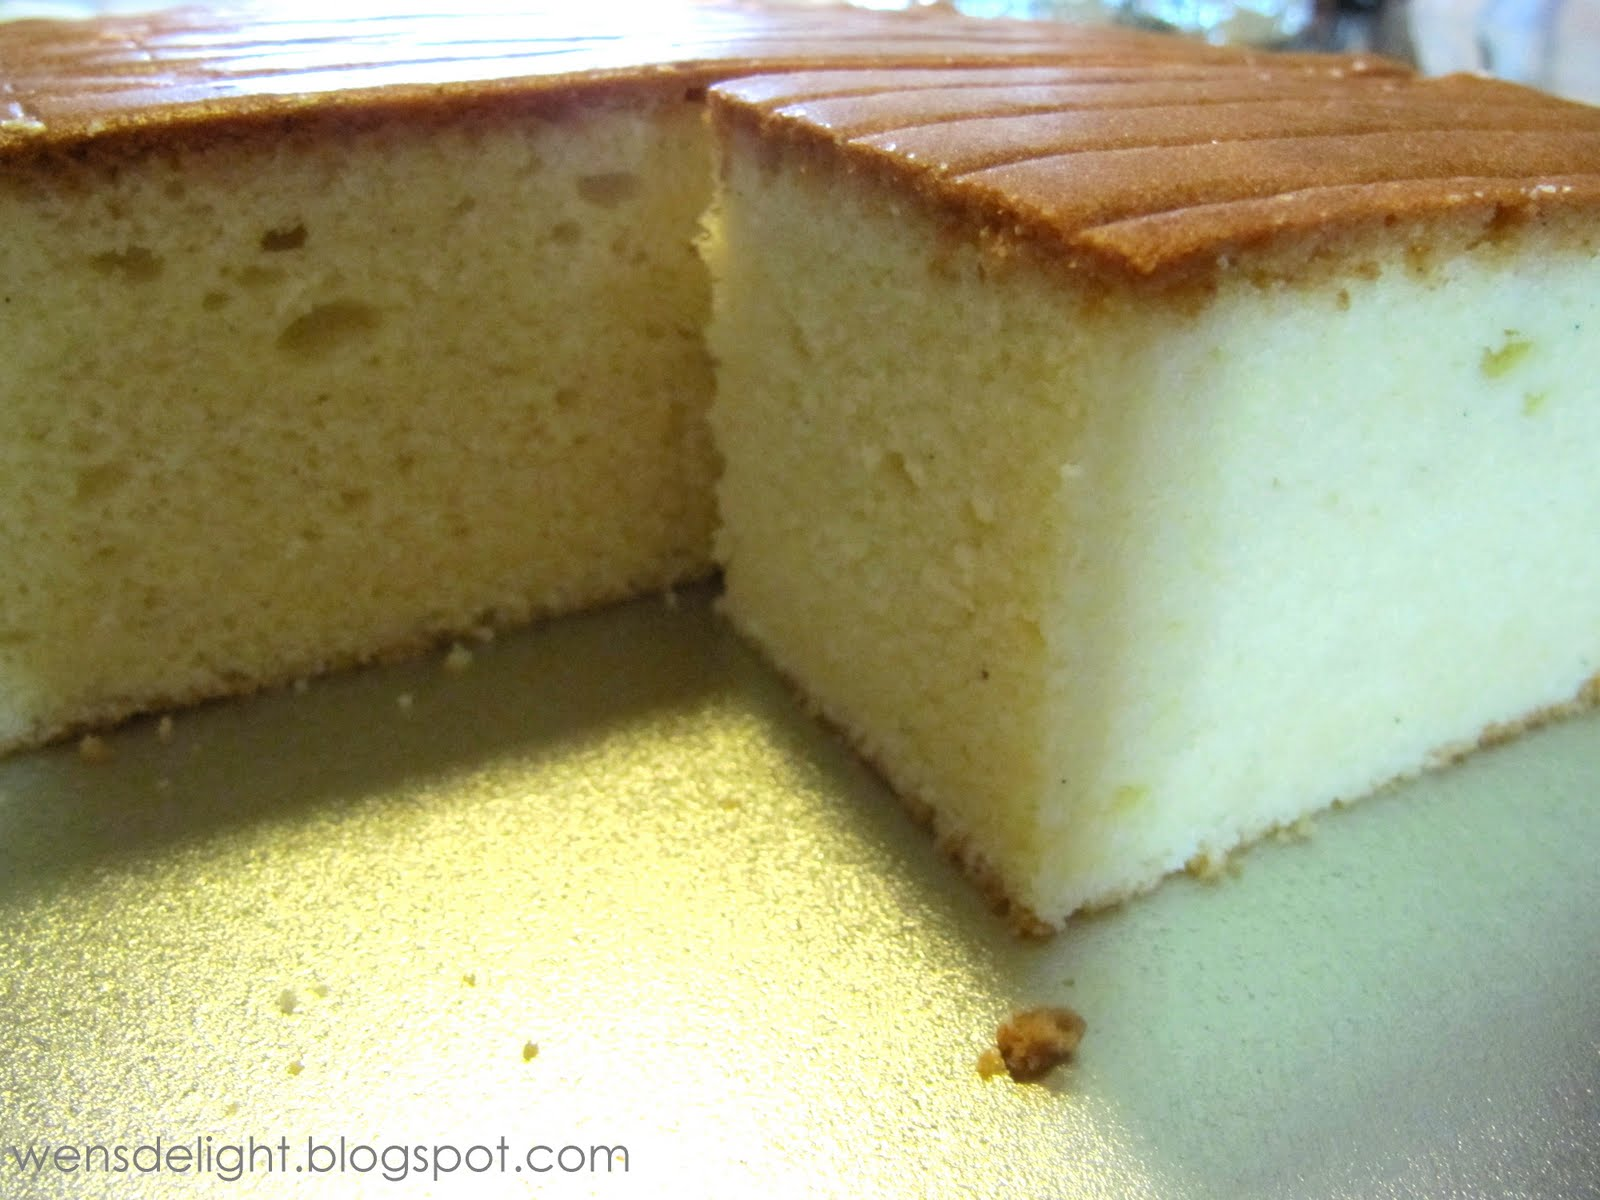 Wen's Delight: A Nice Butter Cake Recipe